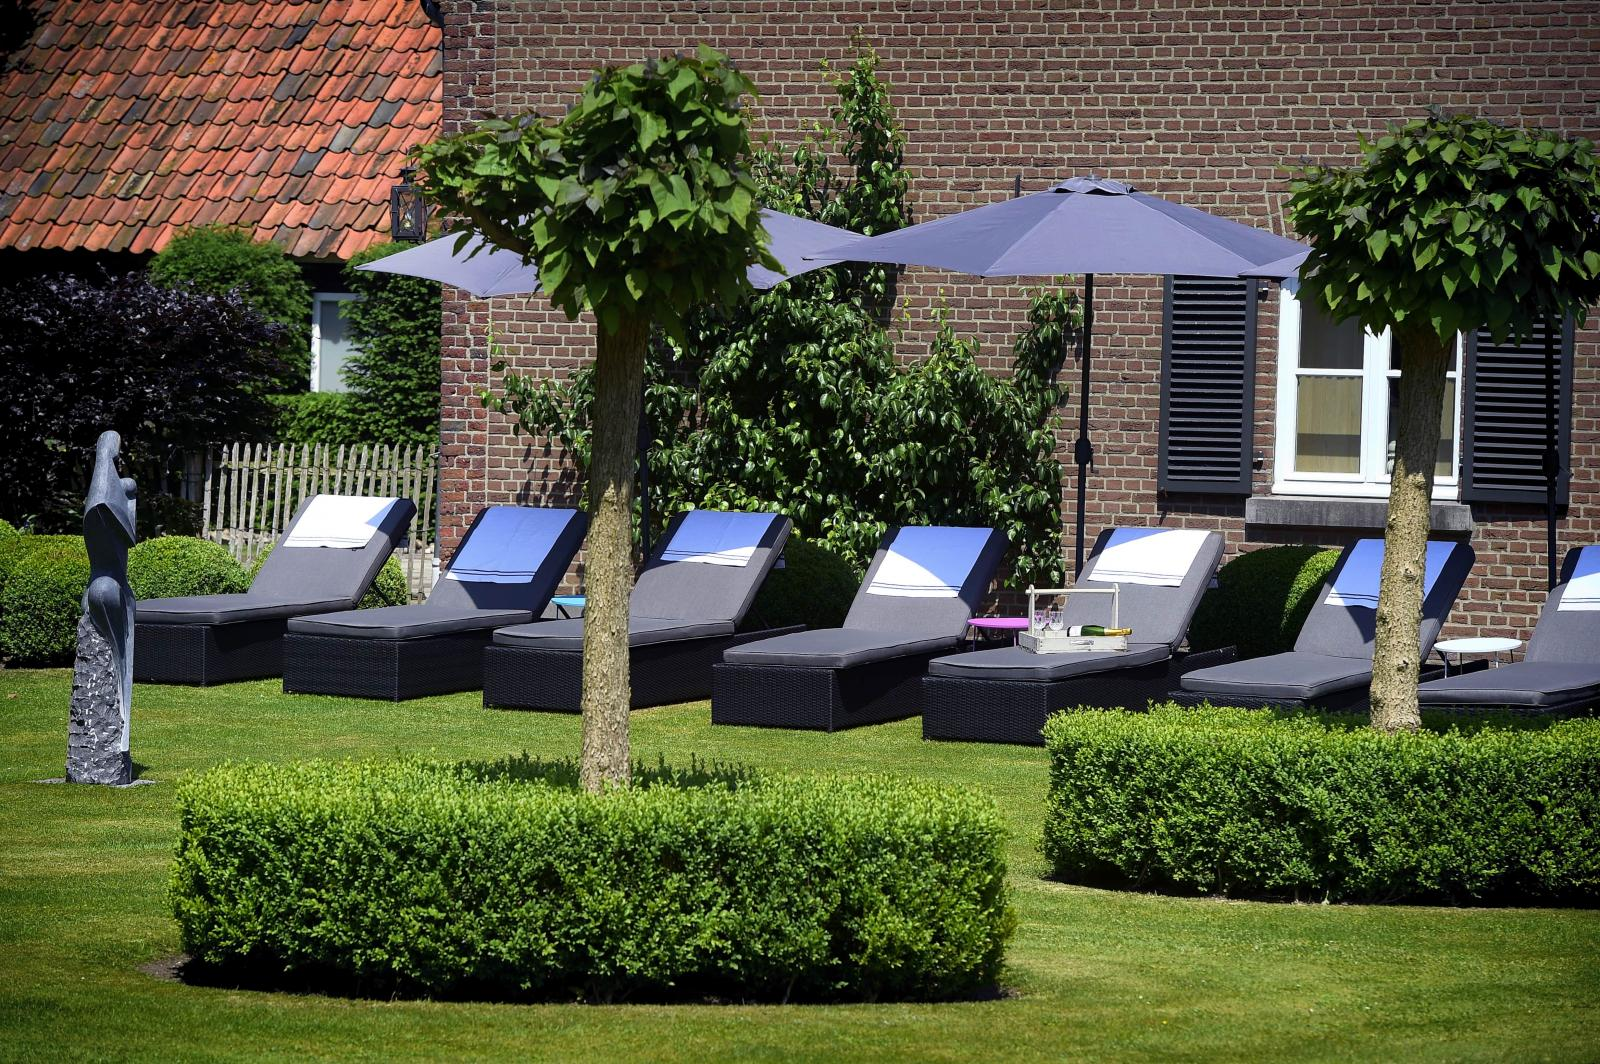 b&b wellness limburg